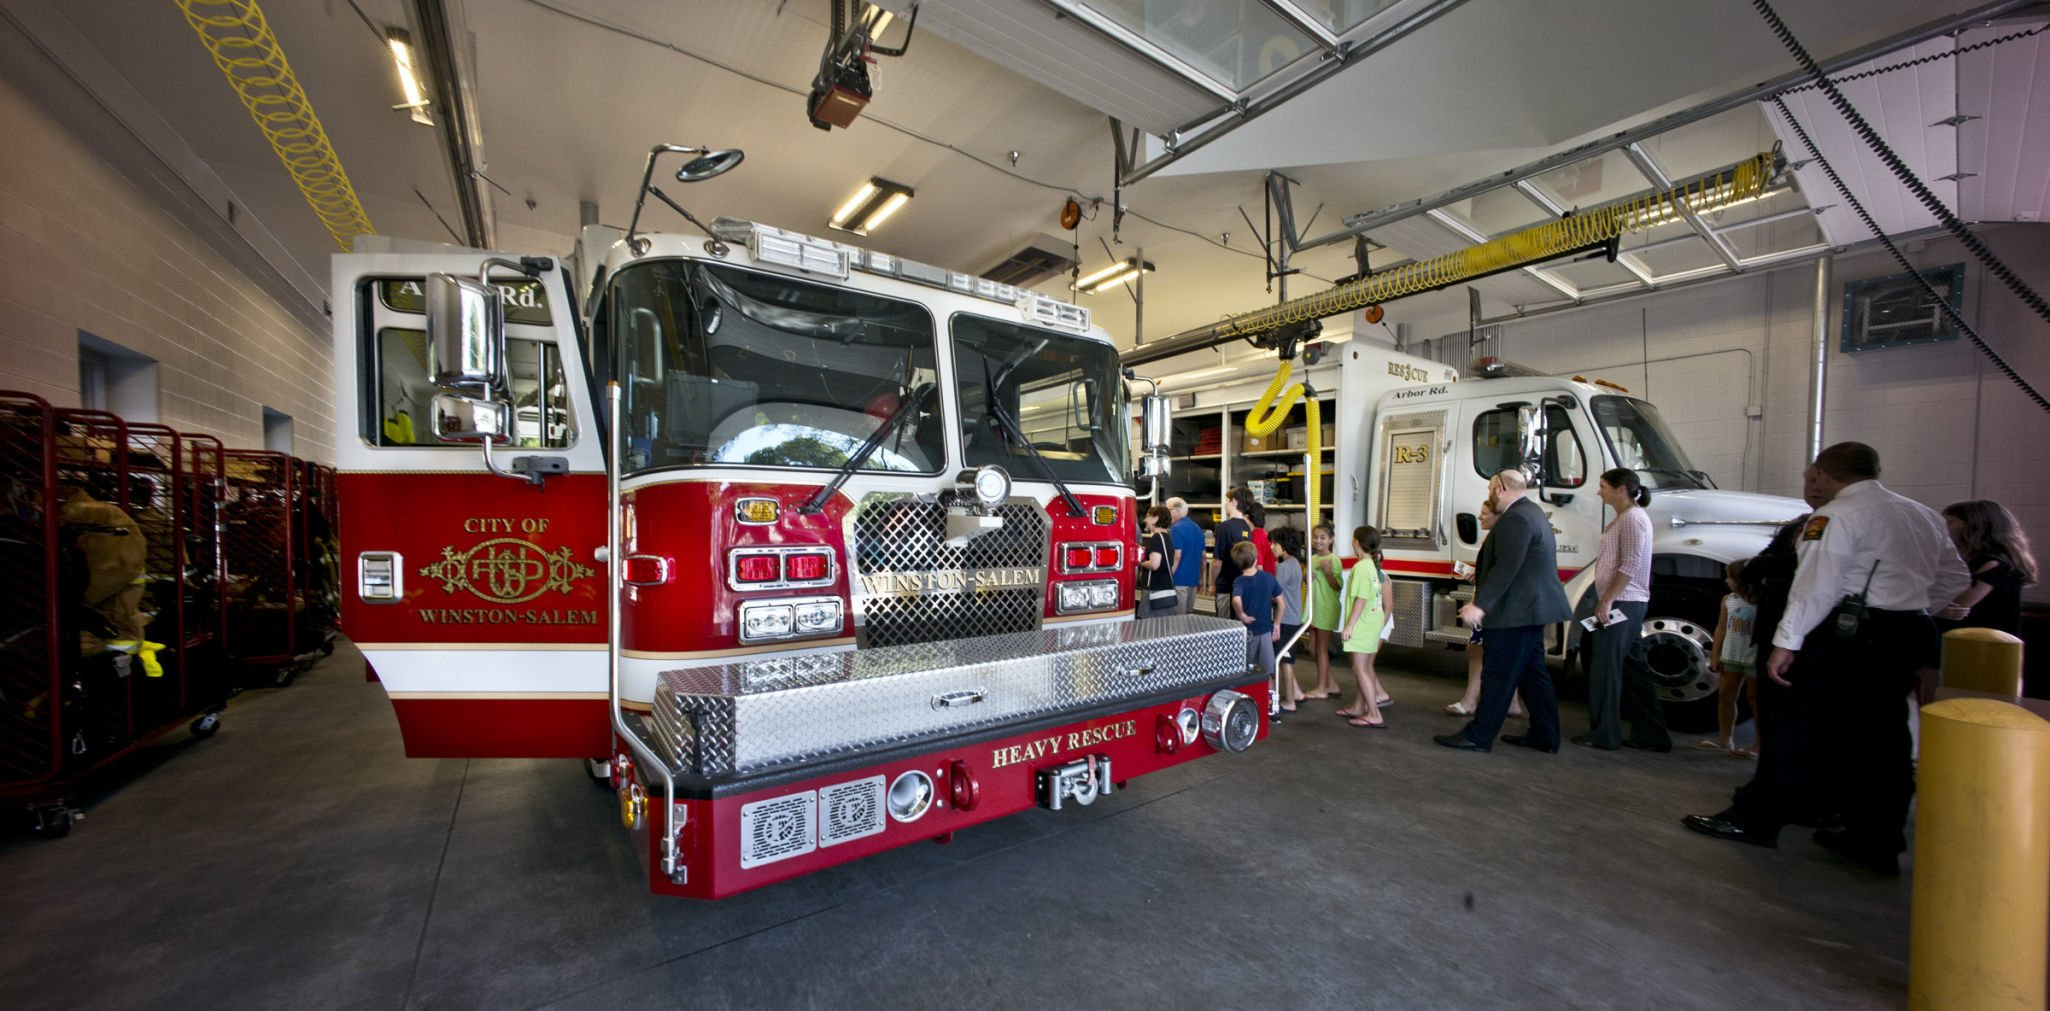 Two-year renovation gives Fire Station 7 space for equipment, better bathrooms and living quarters | Winston Salem Journal